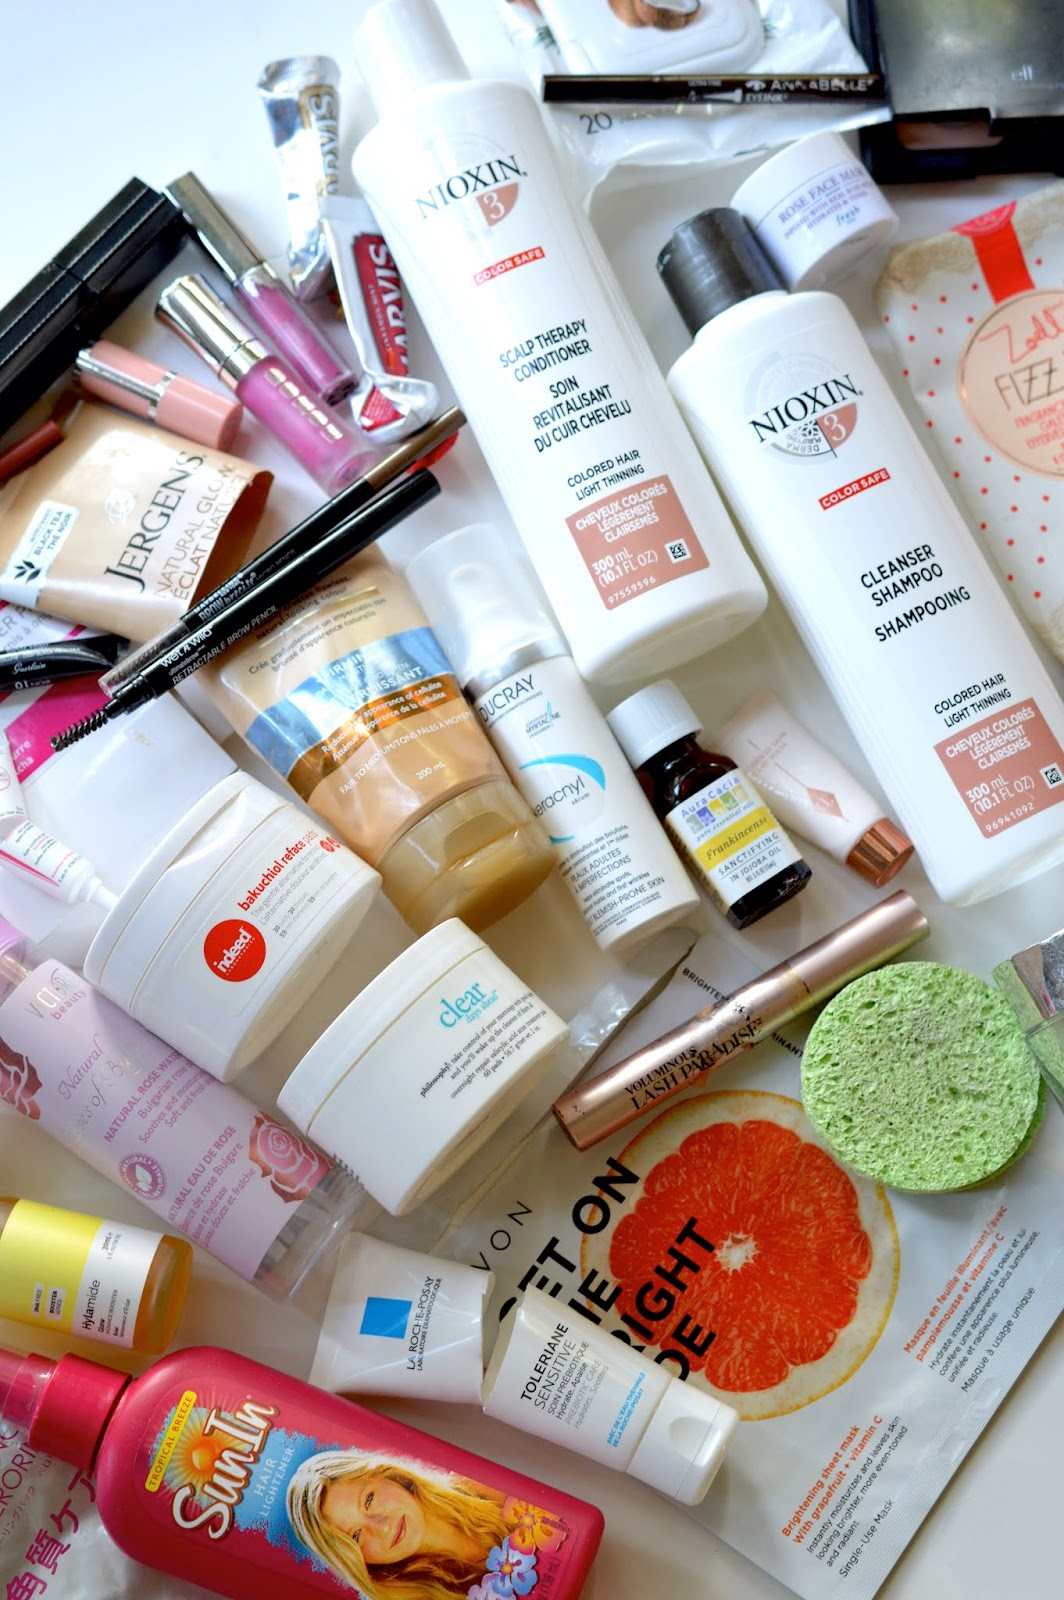 drugstore empties